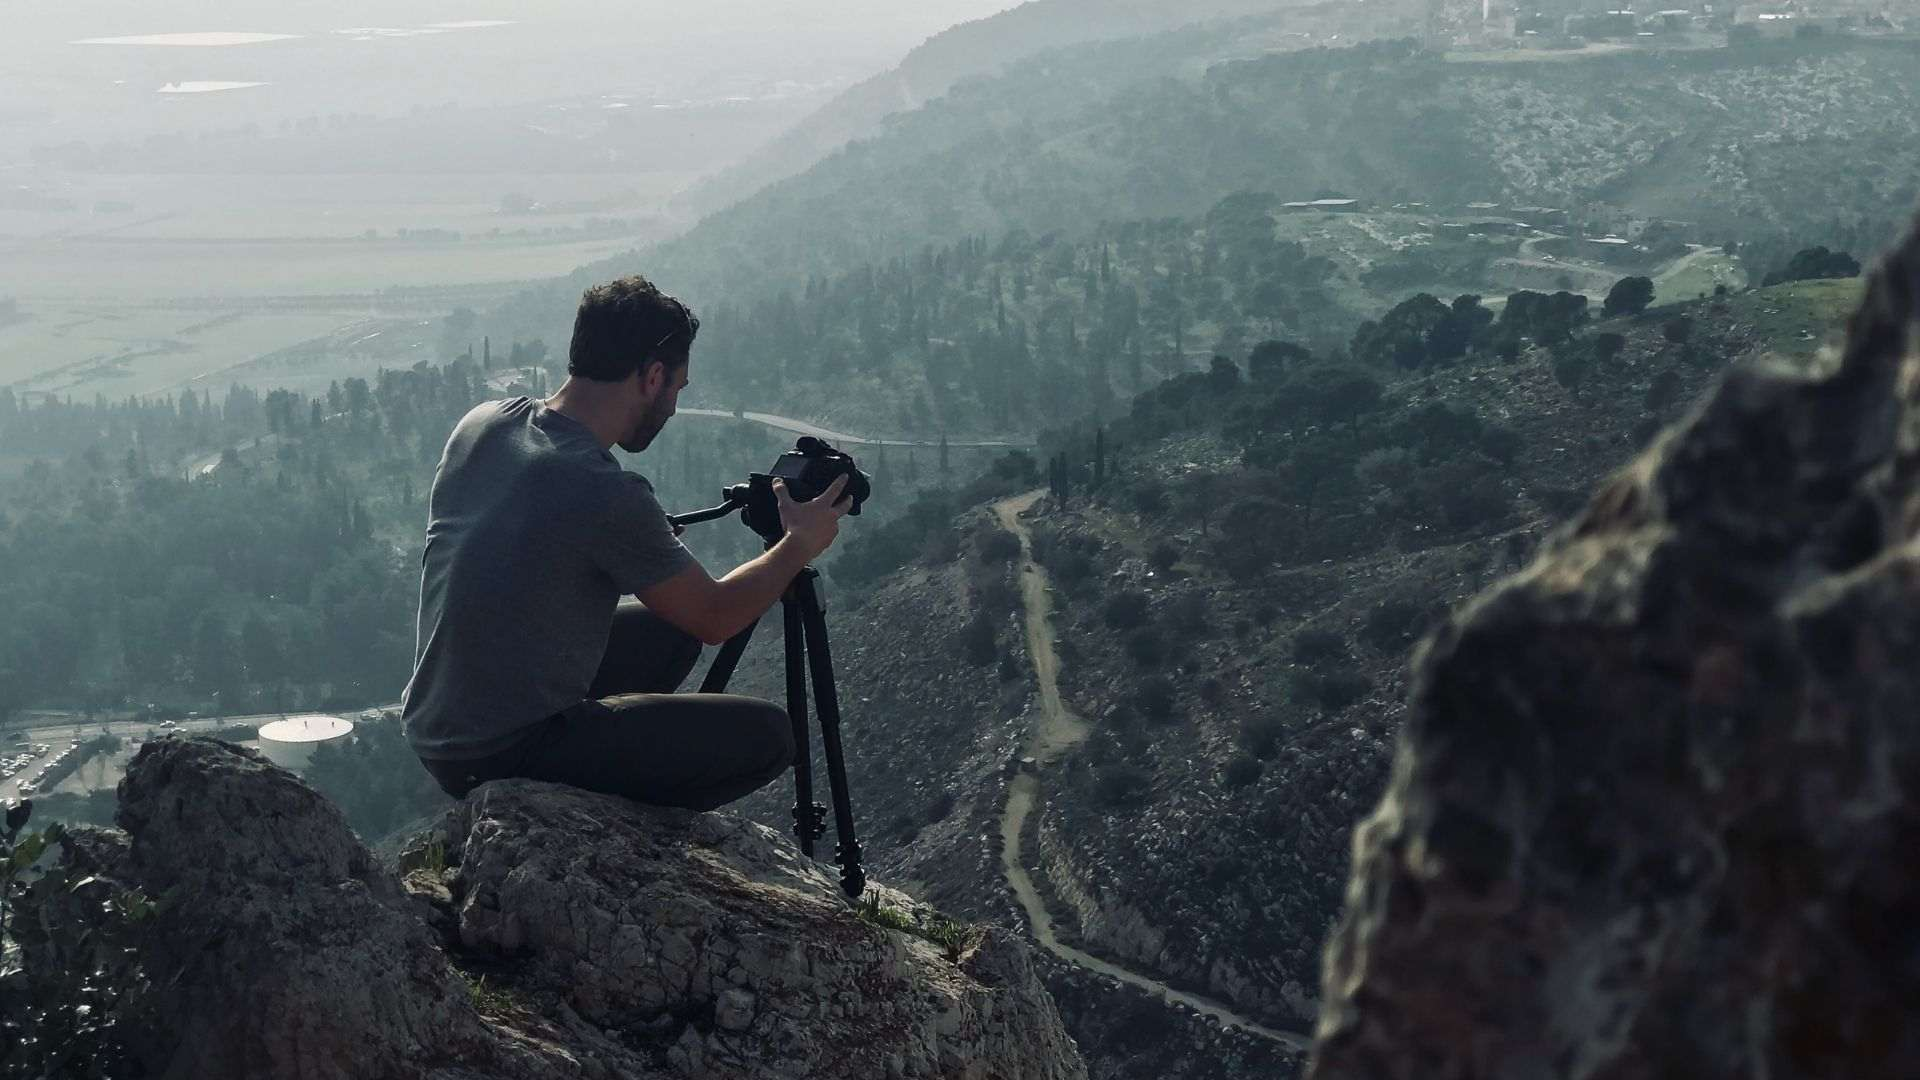 Camera in the mountain